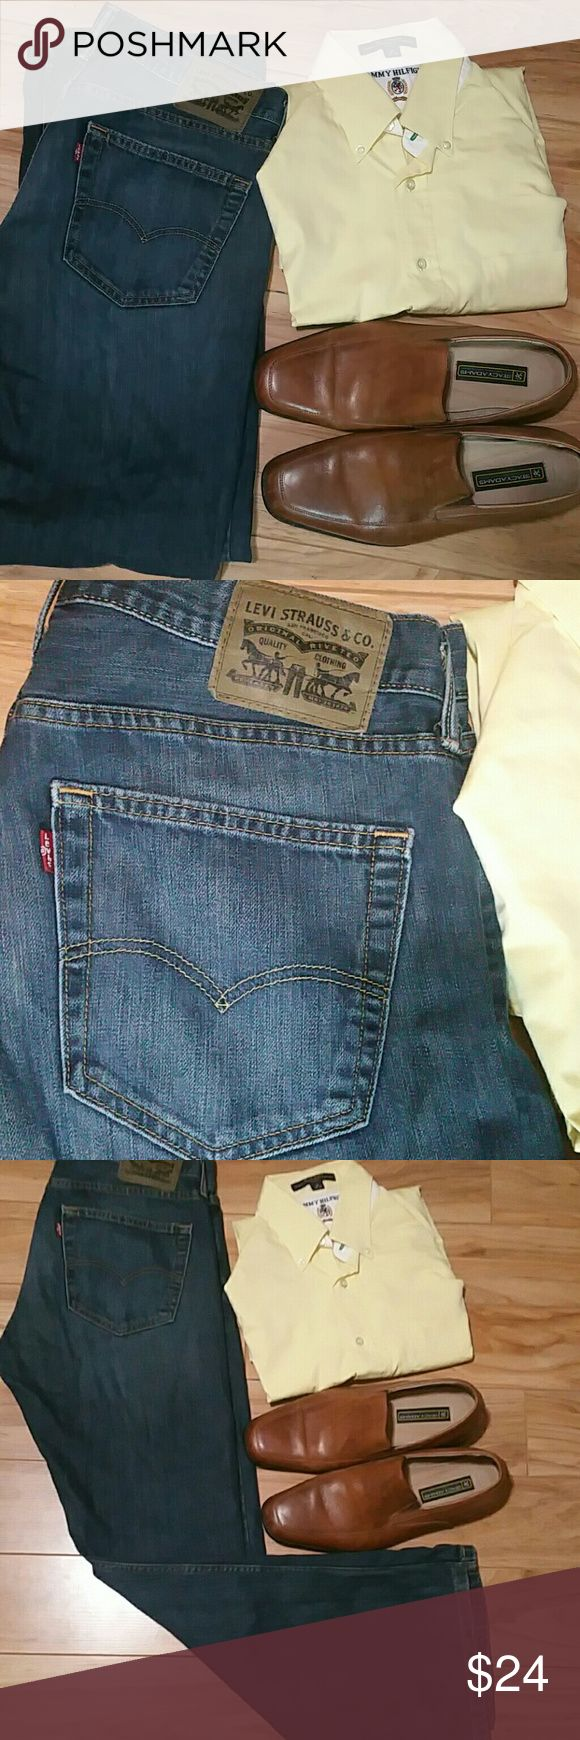 Levis 527 Bootcut  size 34 x 30 Levi's 527 slim boot cut jeans have a lower rise, are slim in the seat and thigh, and boast a boot cut from knee to ankle. NWOT Levi's Jeans Bootcut